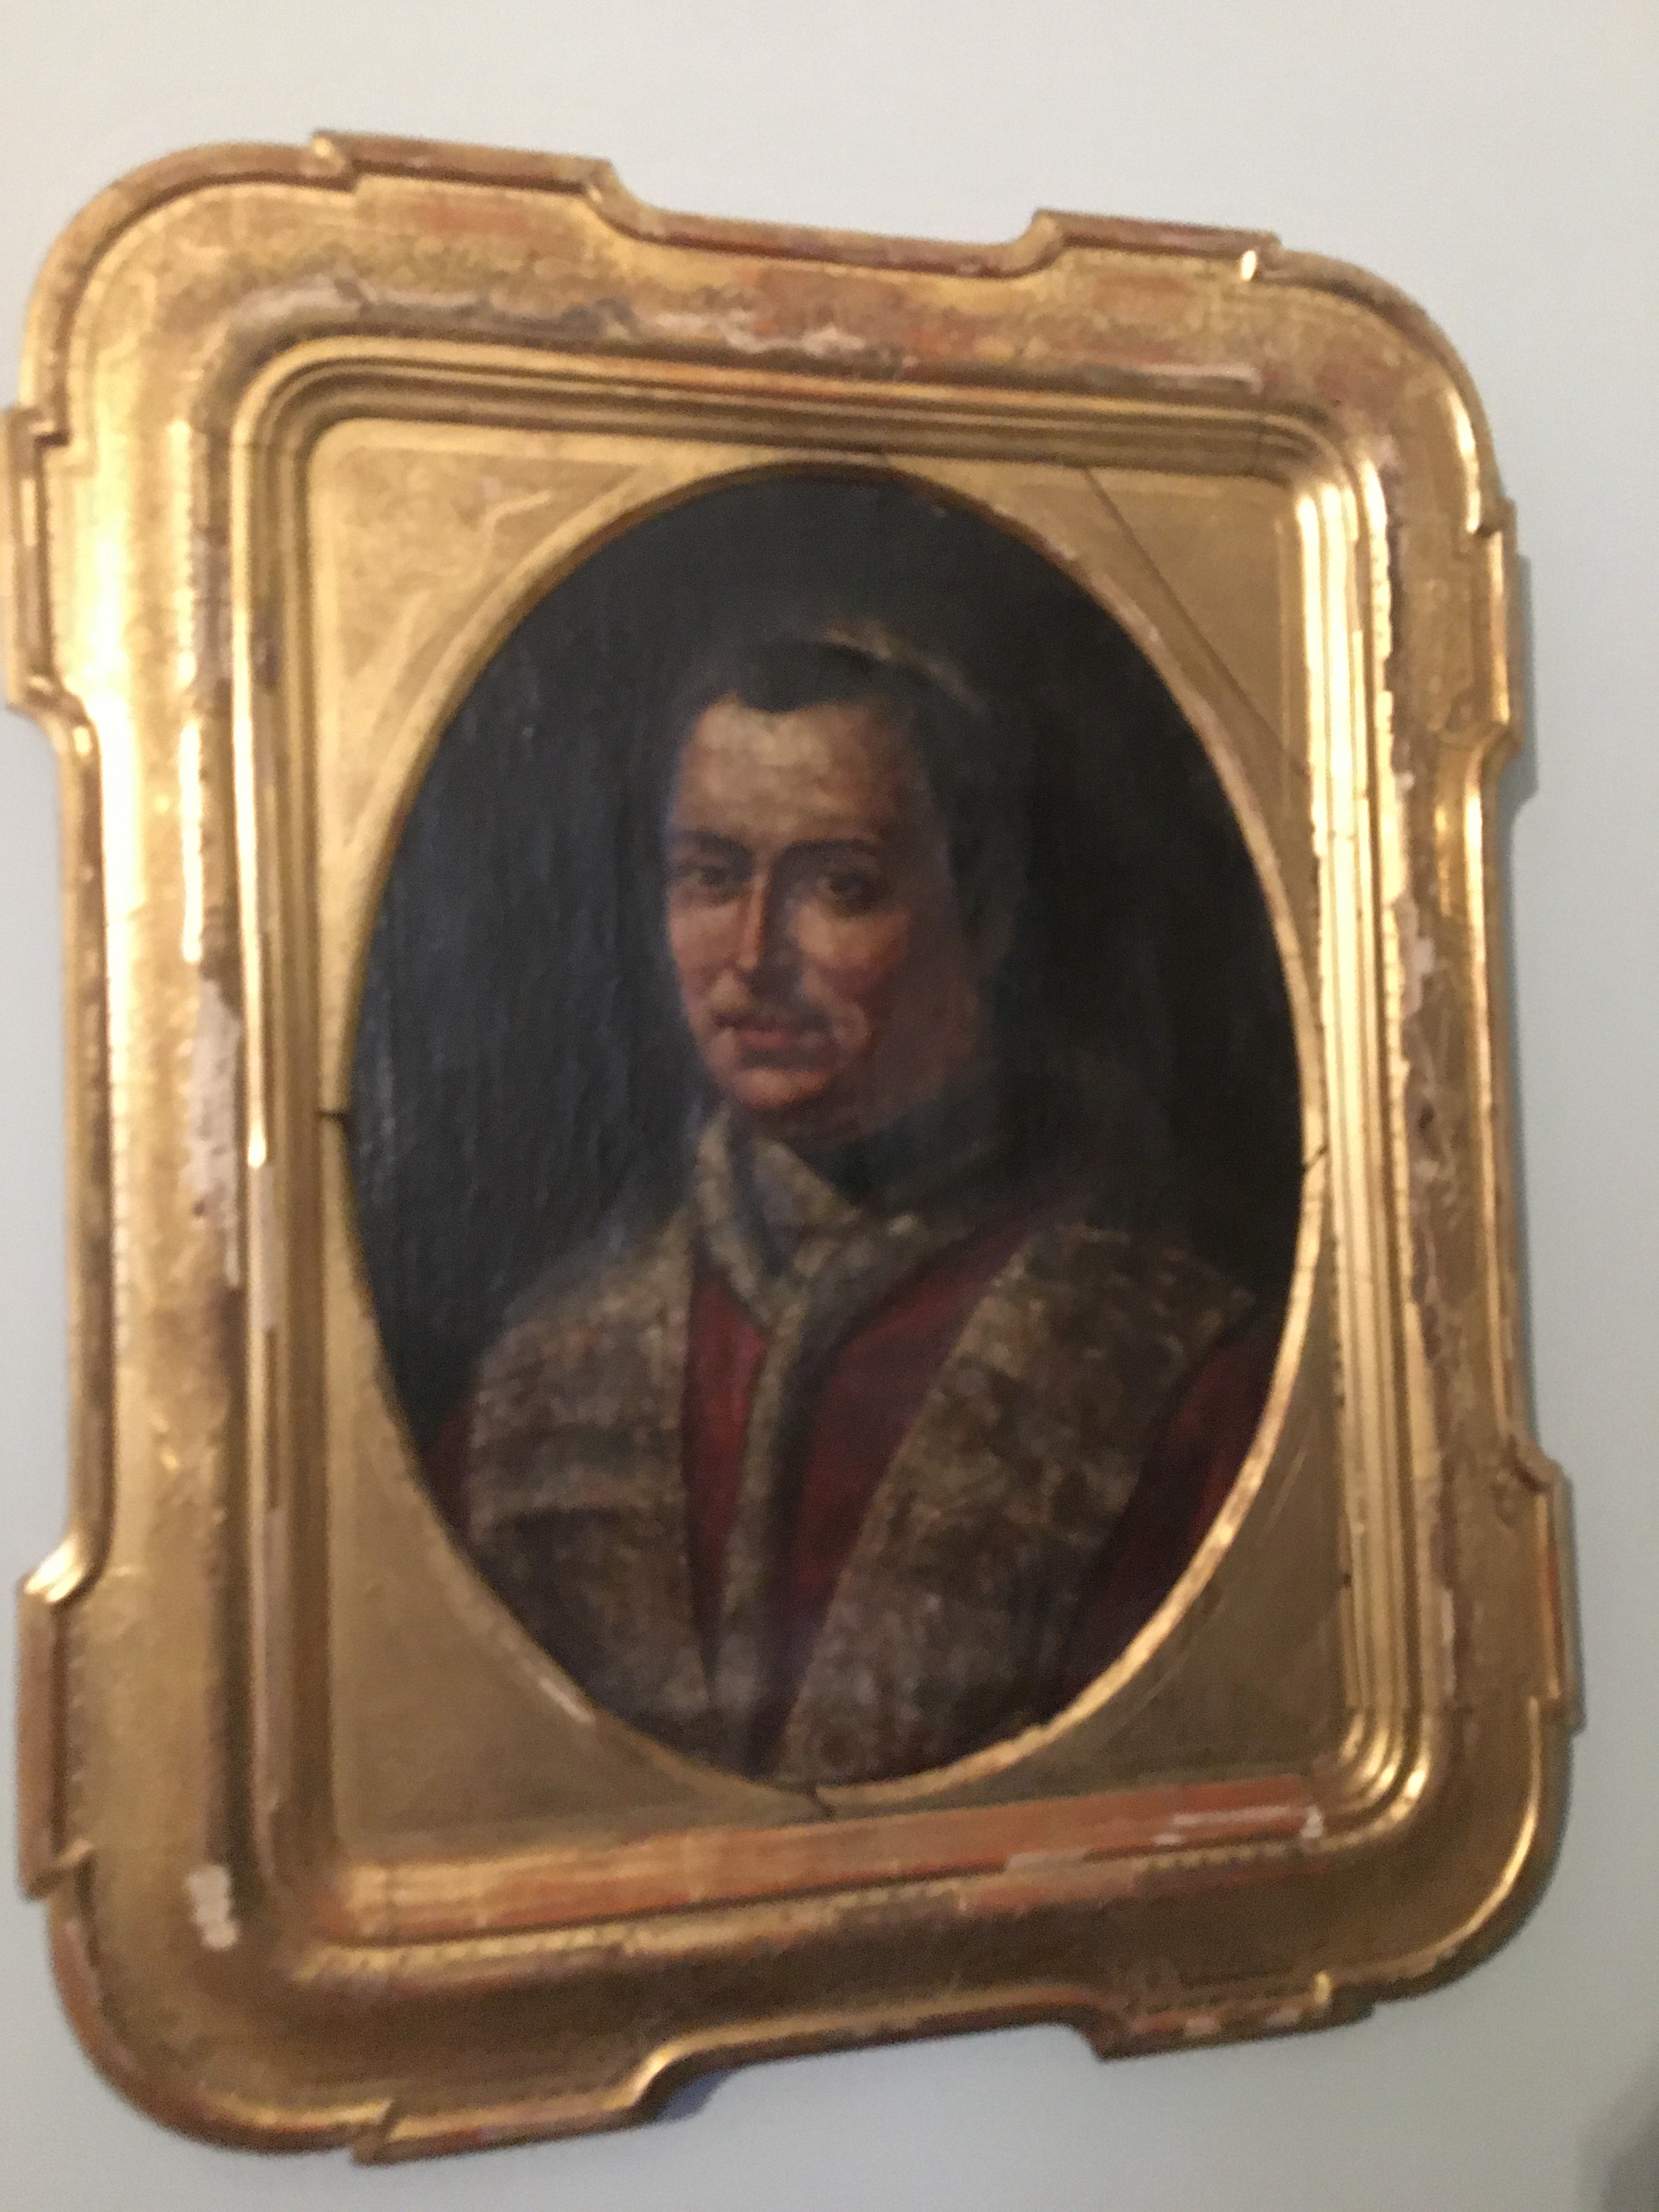 Very old gold portrait of the Pope